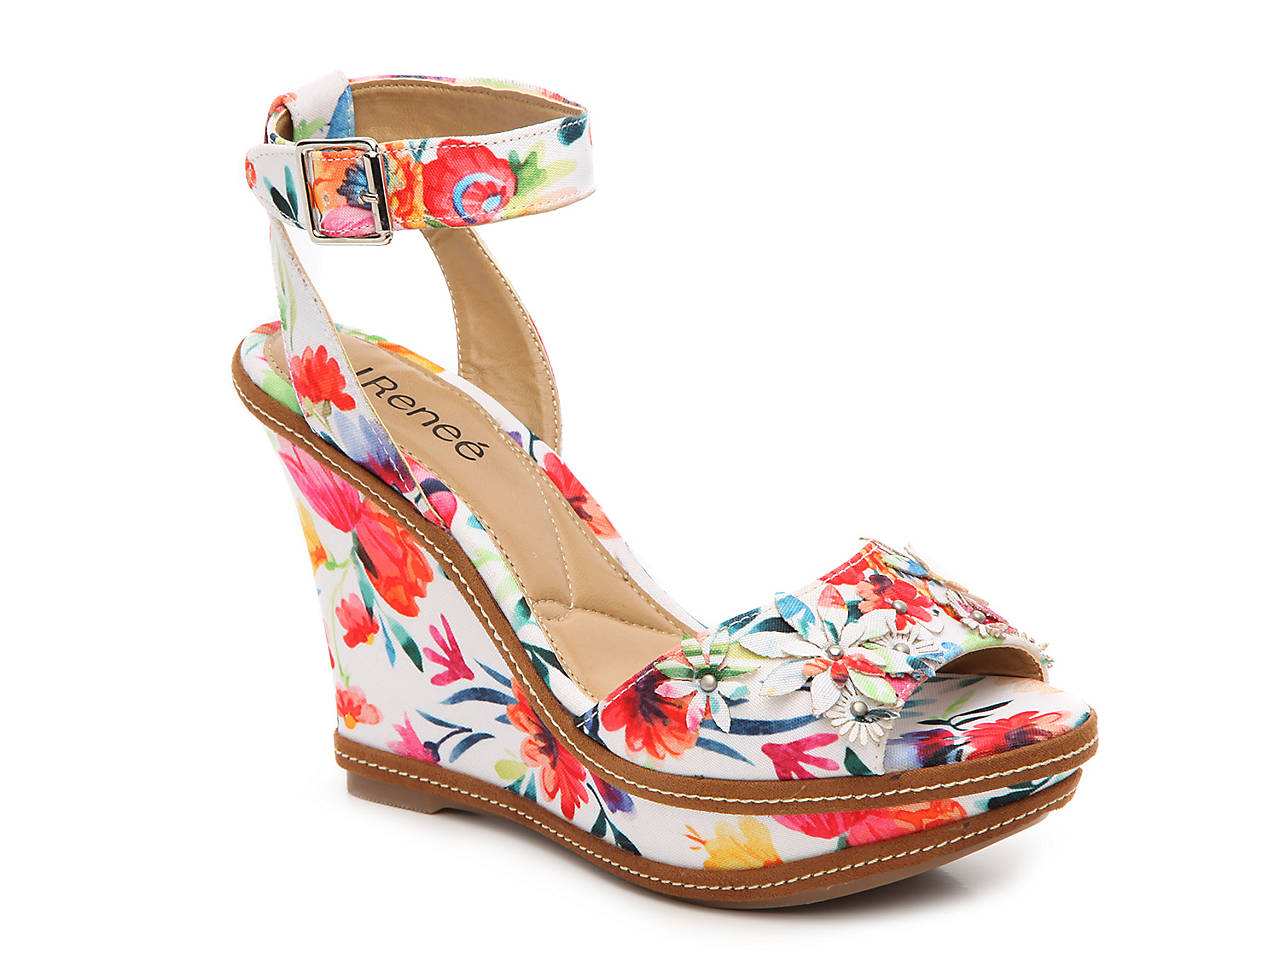 a99cbf721dcc J. Renee Alawna Wedge Sandal Women s Shoes